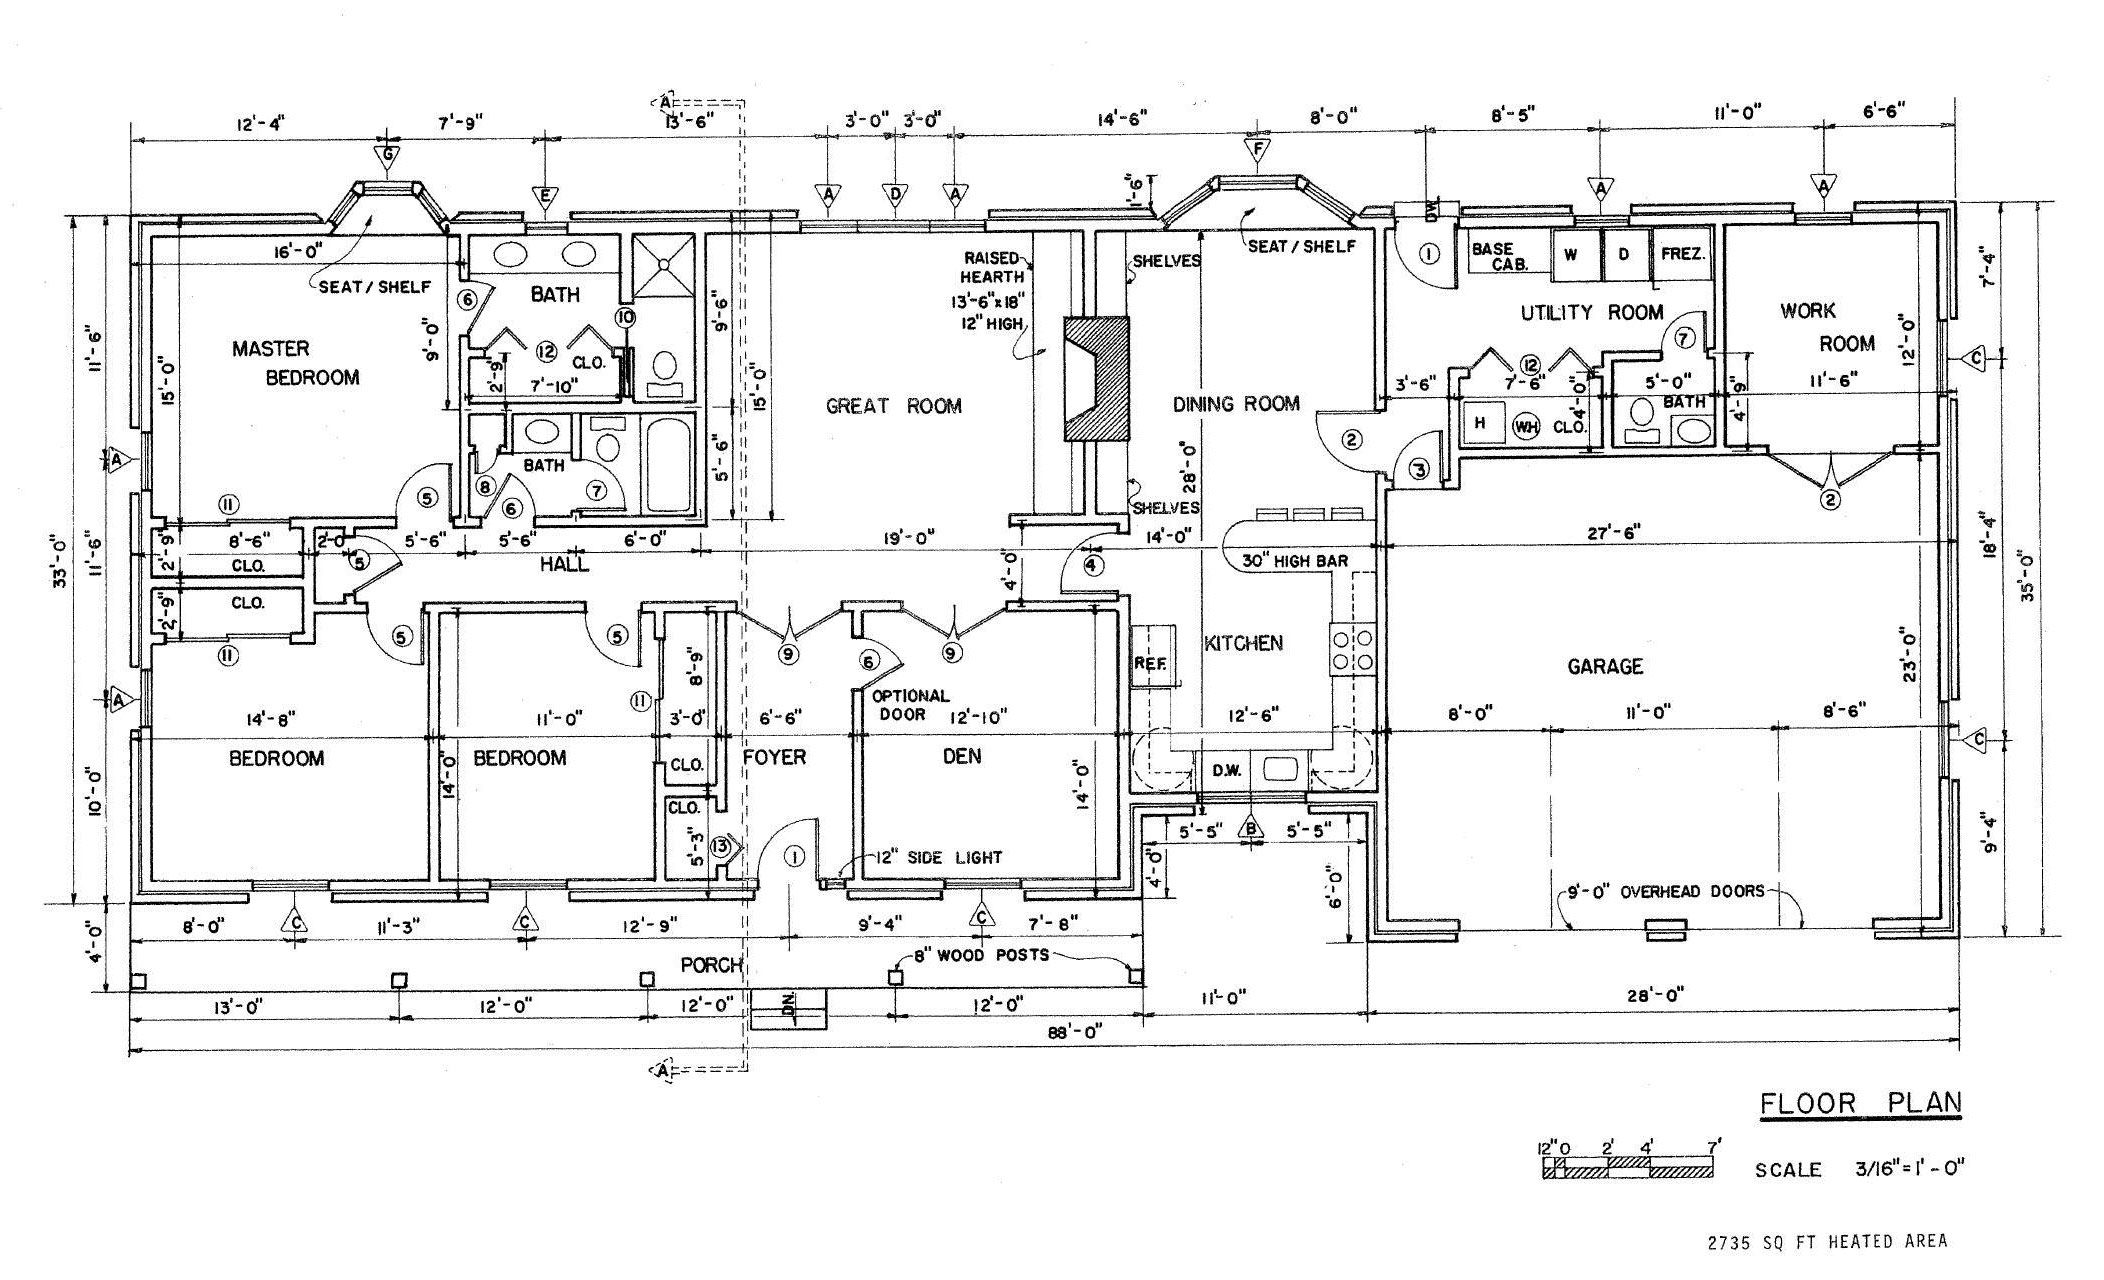 Open Concept Ranch House Plans With Mud Room Free 3 Bedroom Country Ranch House Plan With 2 Car Floor Plans Ranch Ranch House Floor Plans Unique House Plans